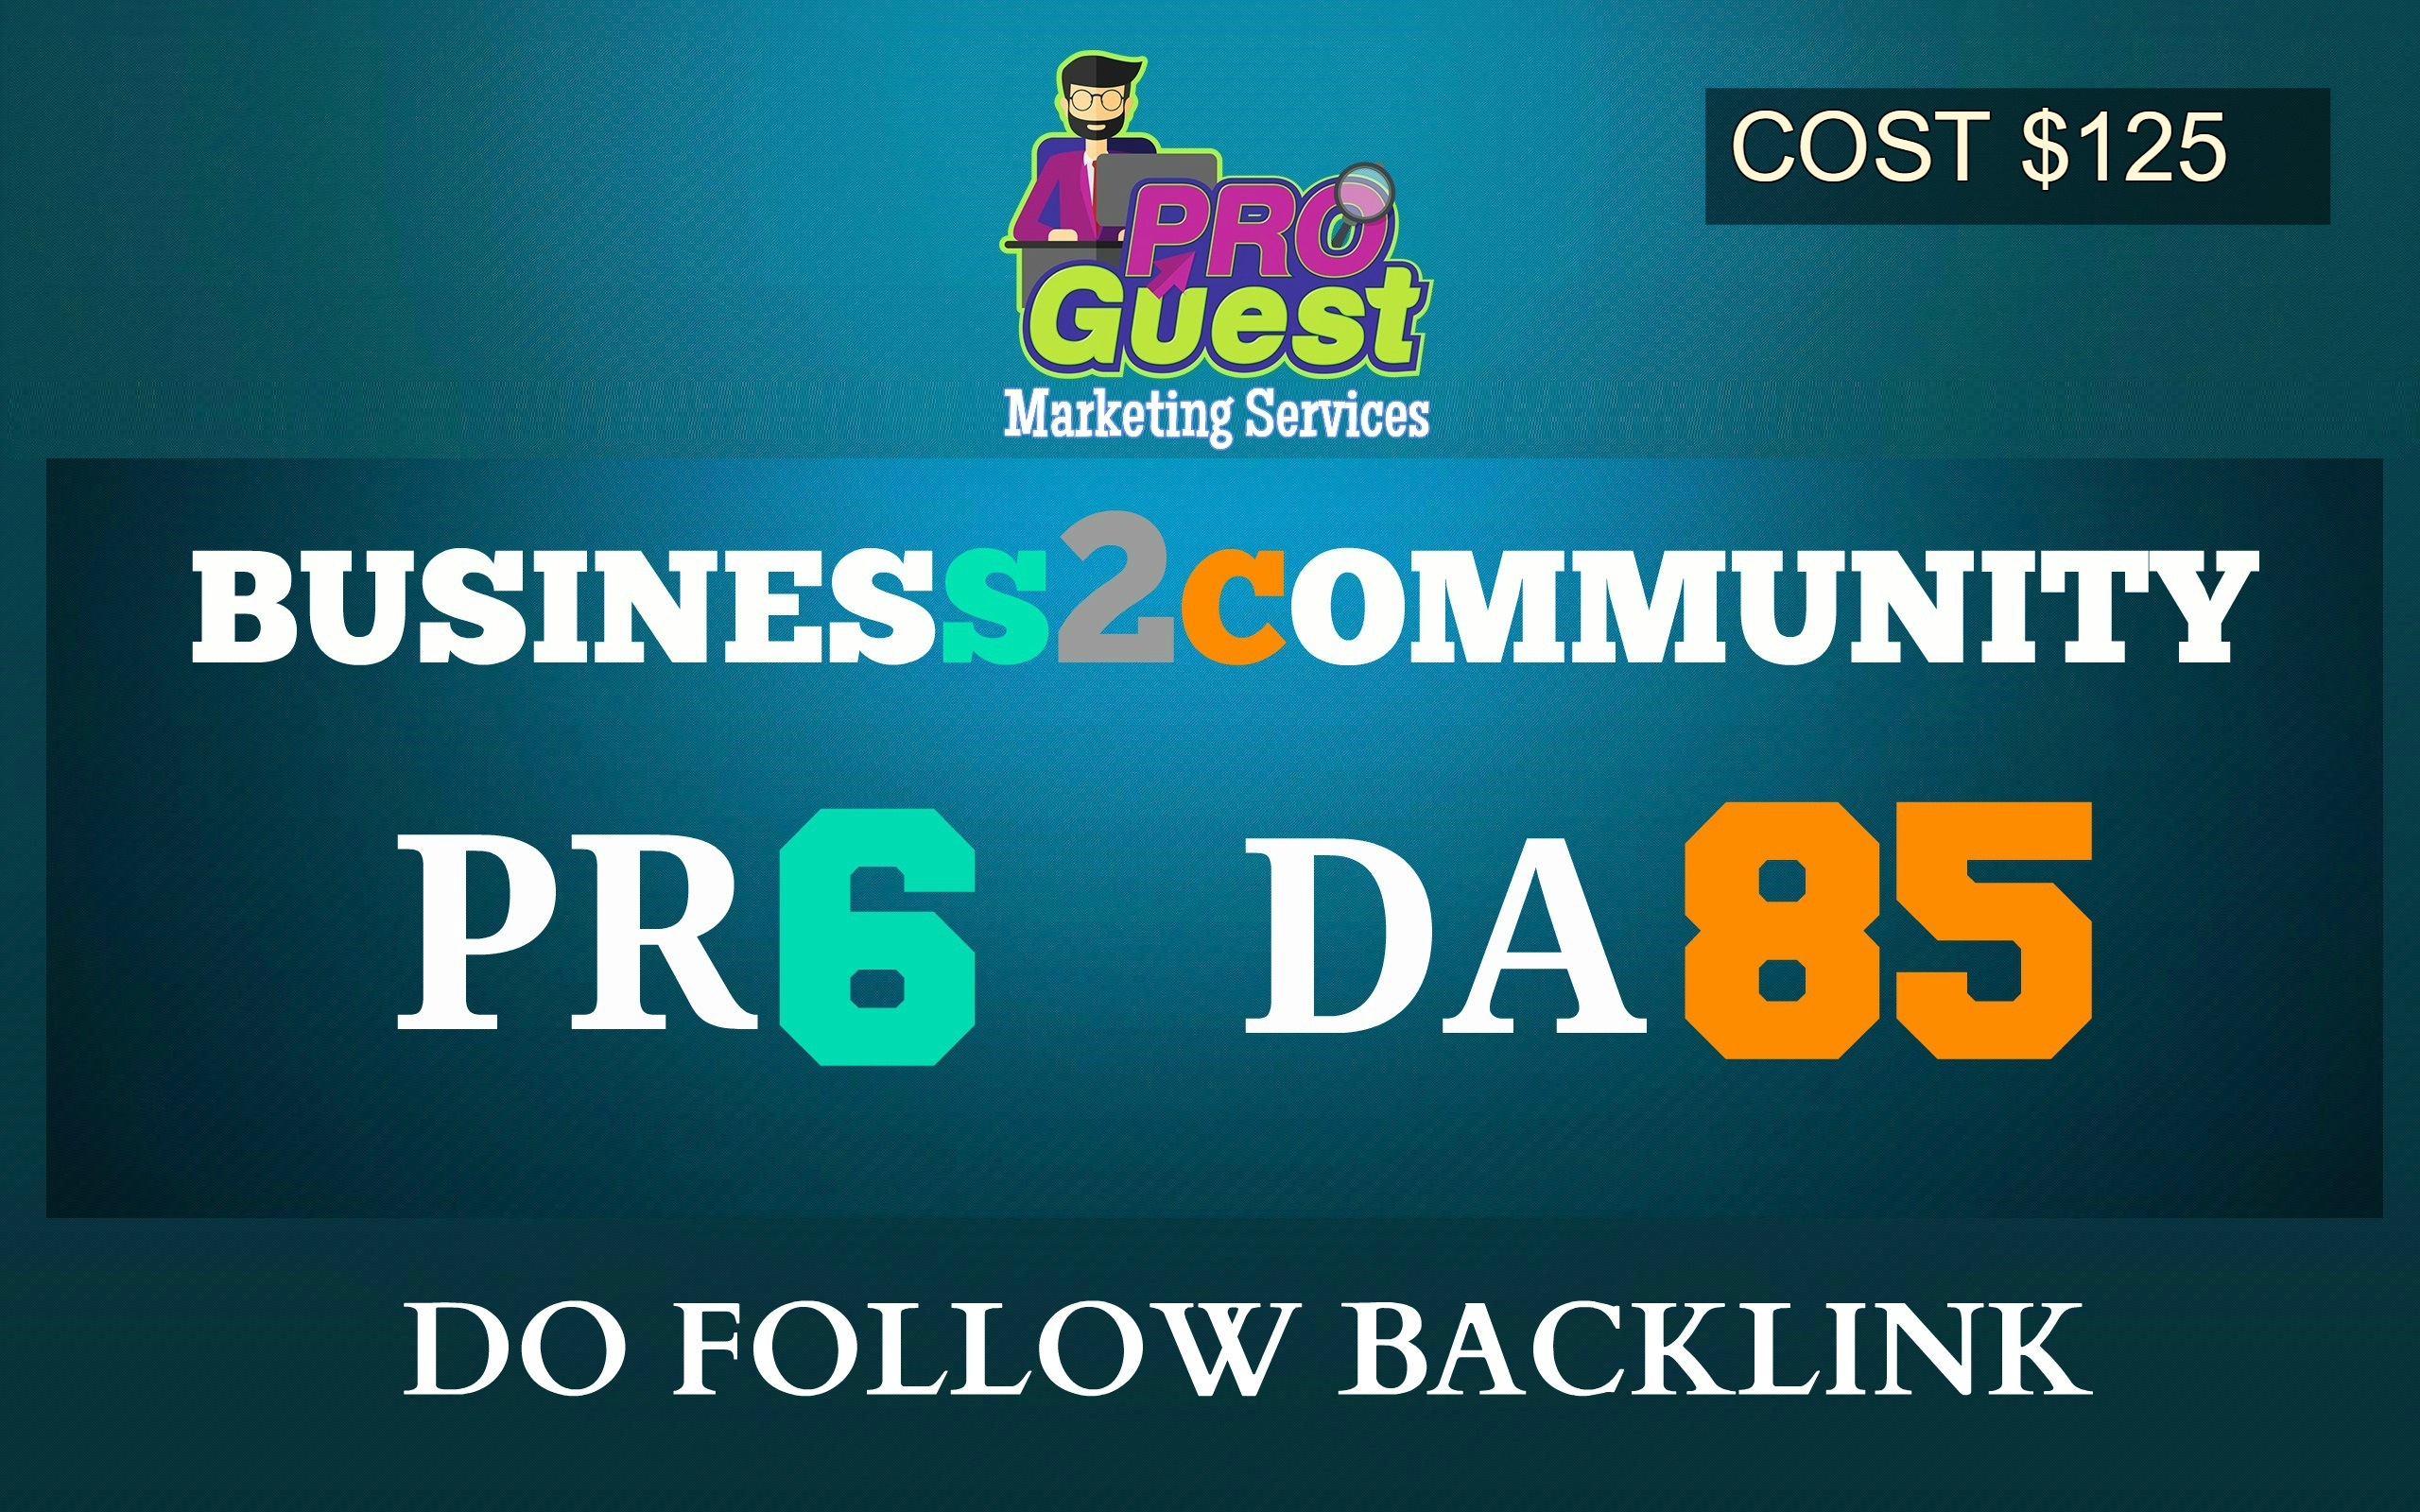 Write and Publish a Guest Post on Business2community.com